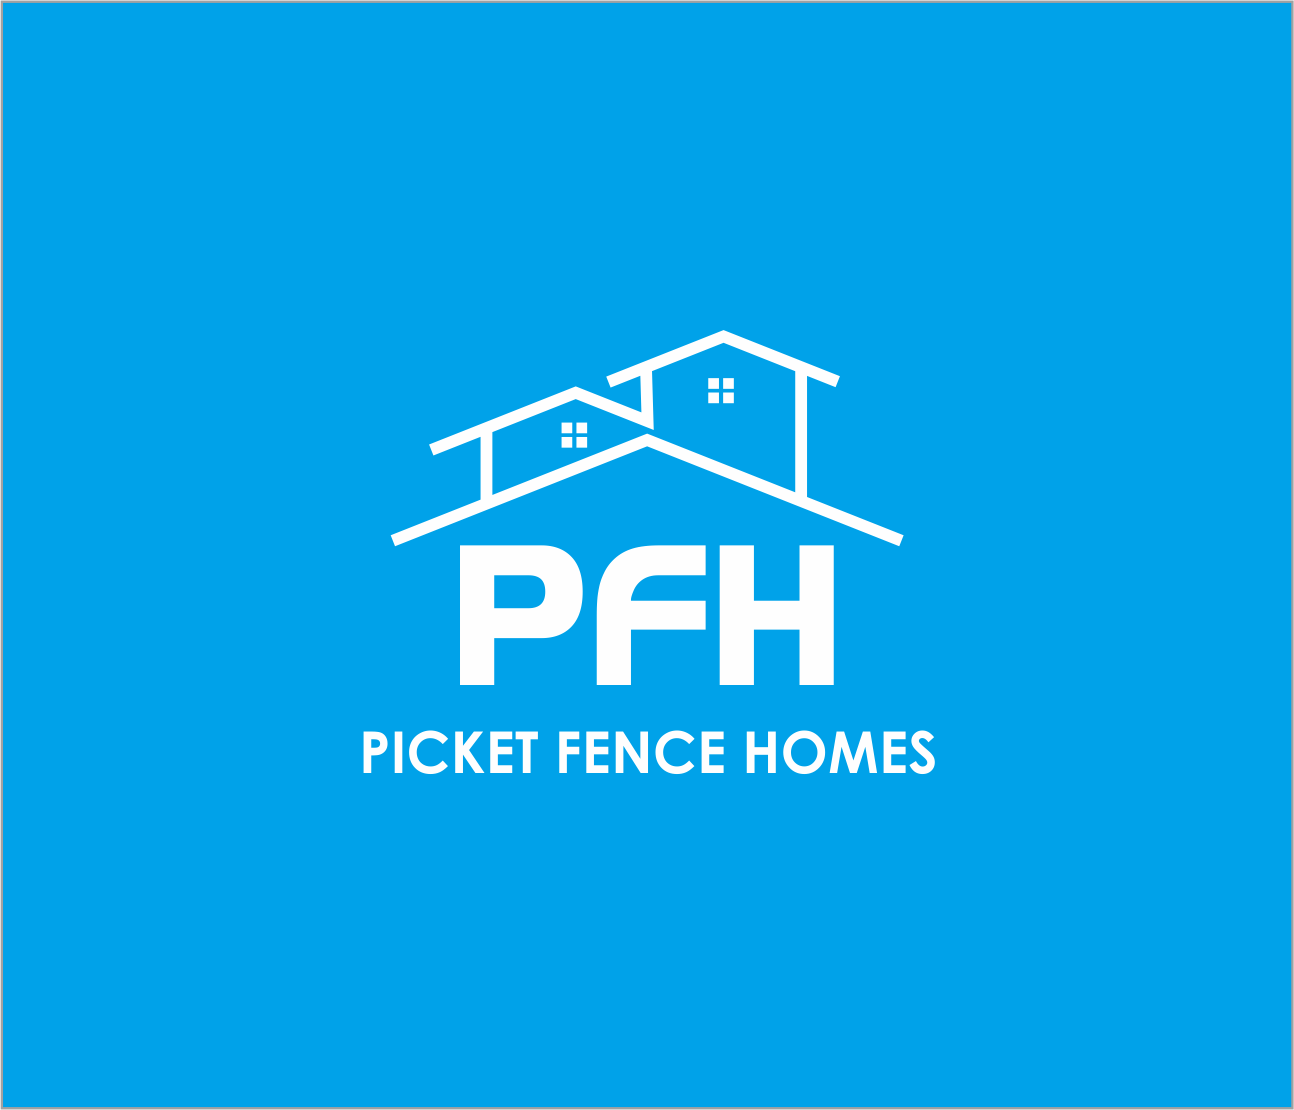 Logo Design by Armada Jamaluddin - Entry No. 21 in the Logo Design Contest Picket Fence Homes Logo Design.